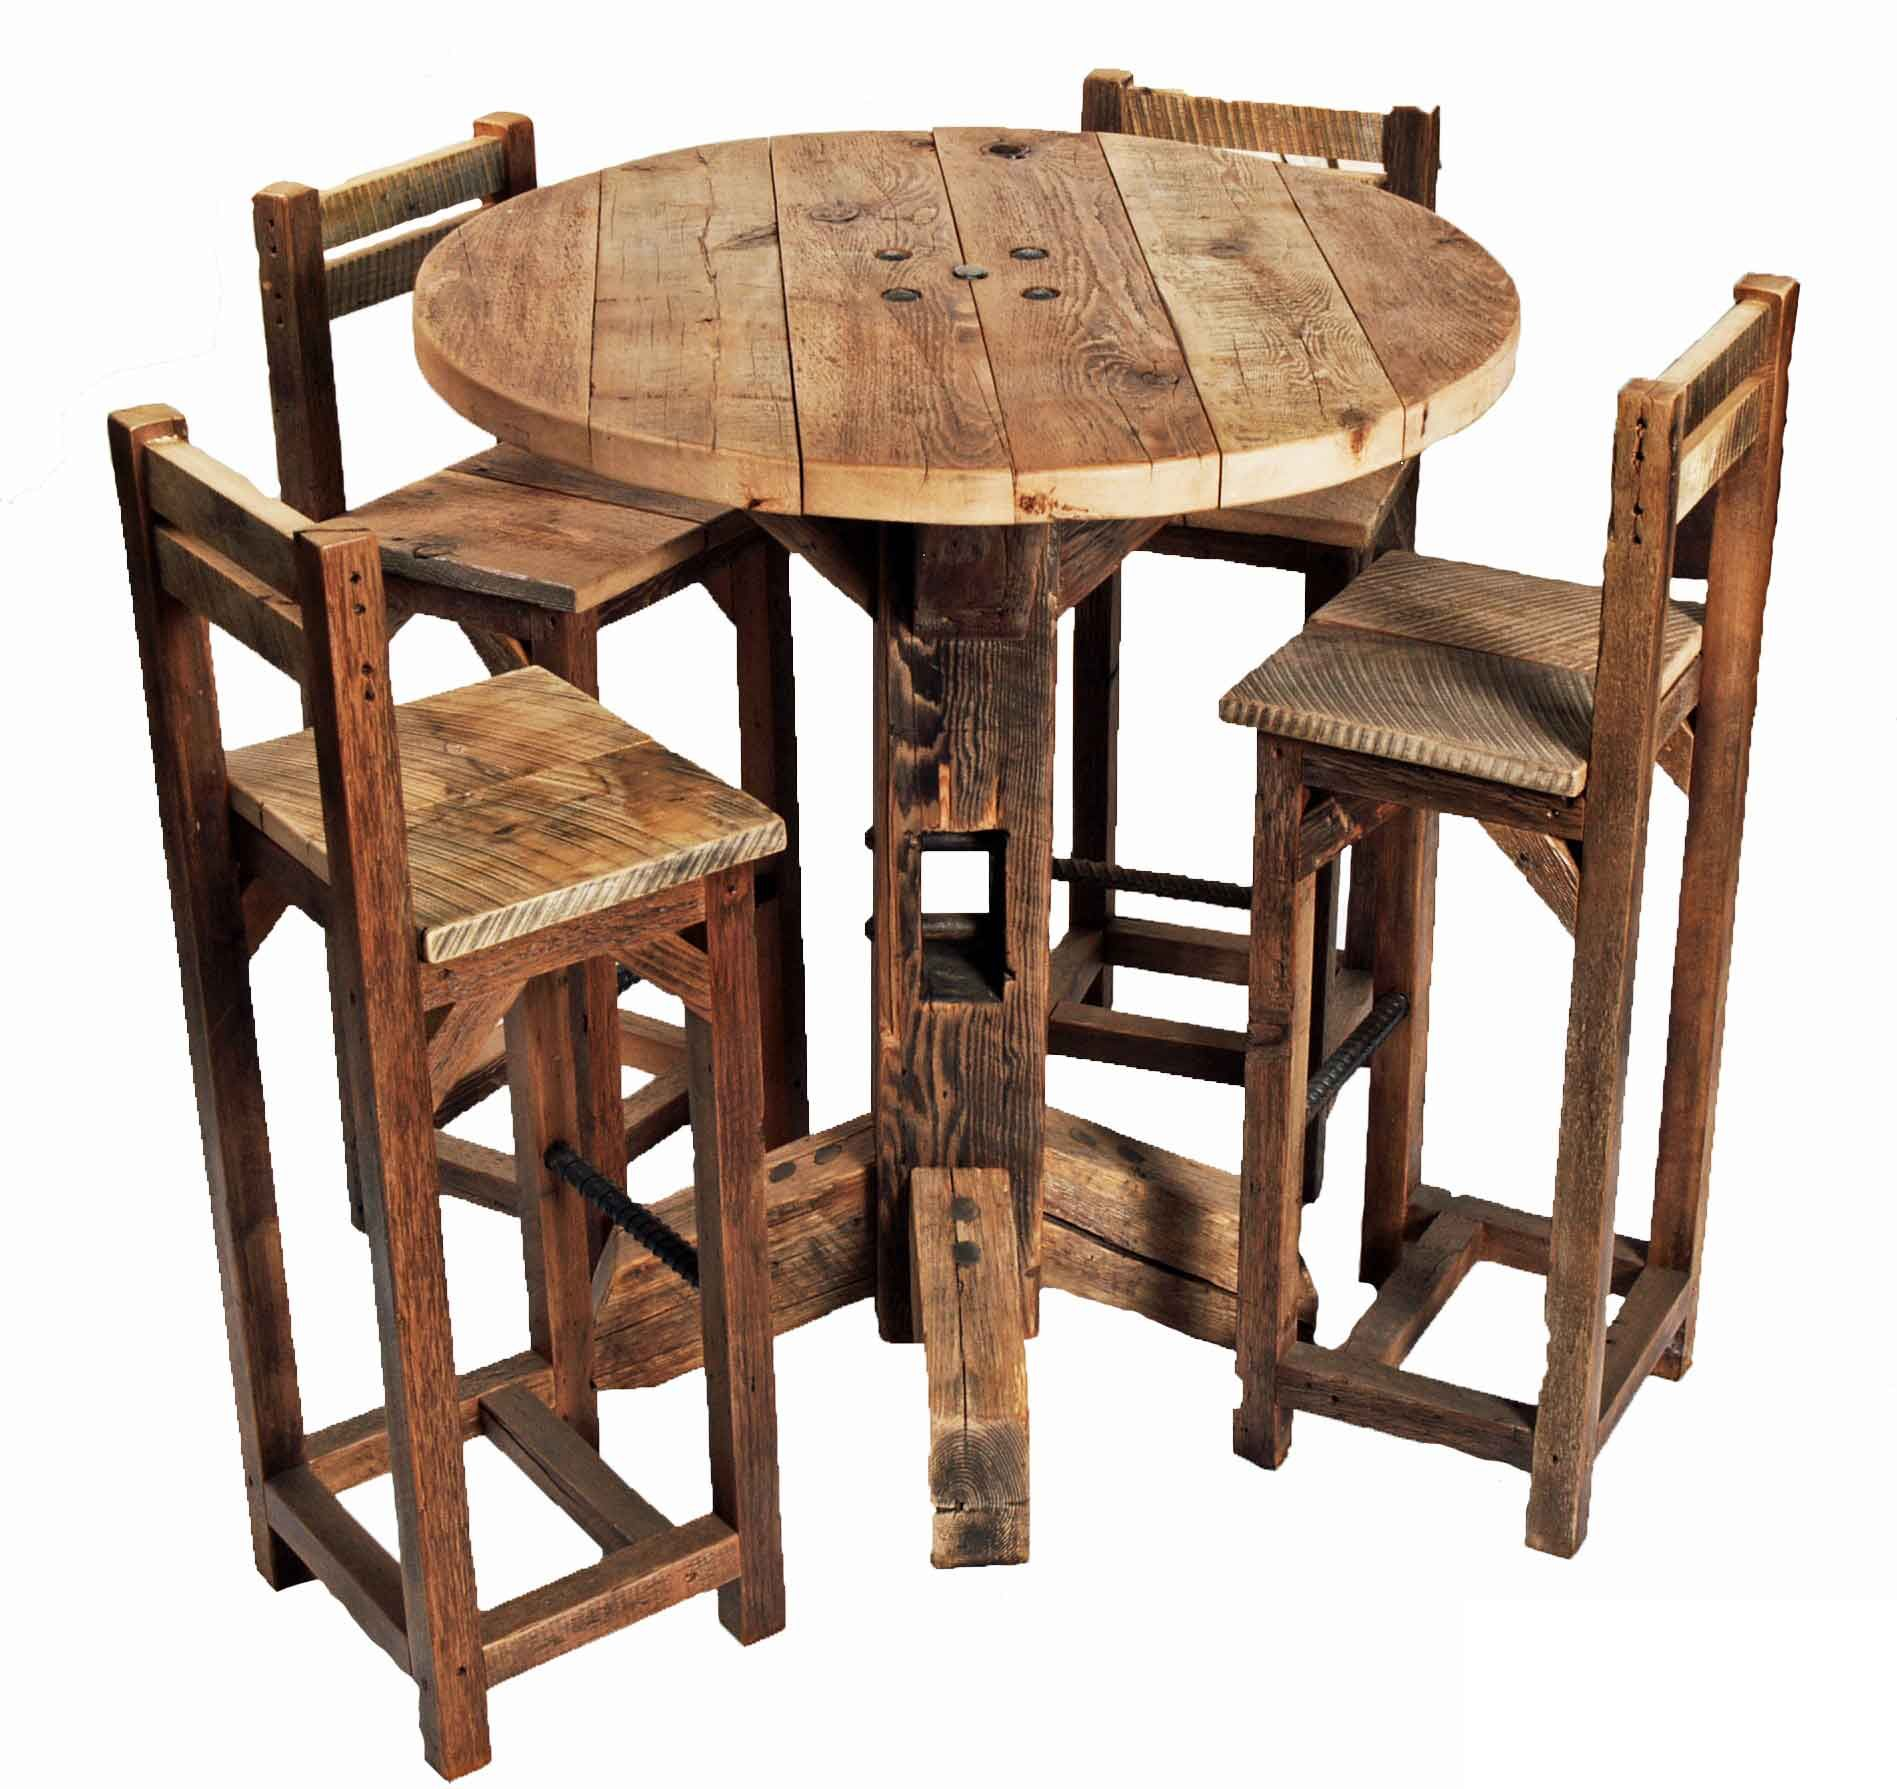 Furniture old rustic small high round top kitchen table for Best wooden dining tables and chairs